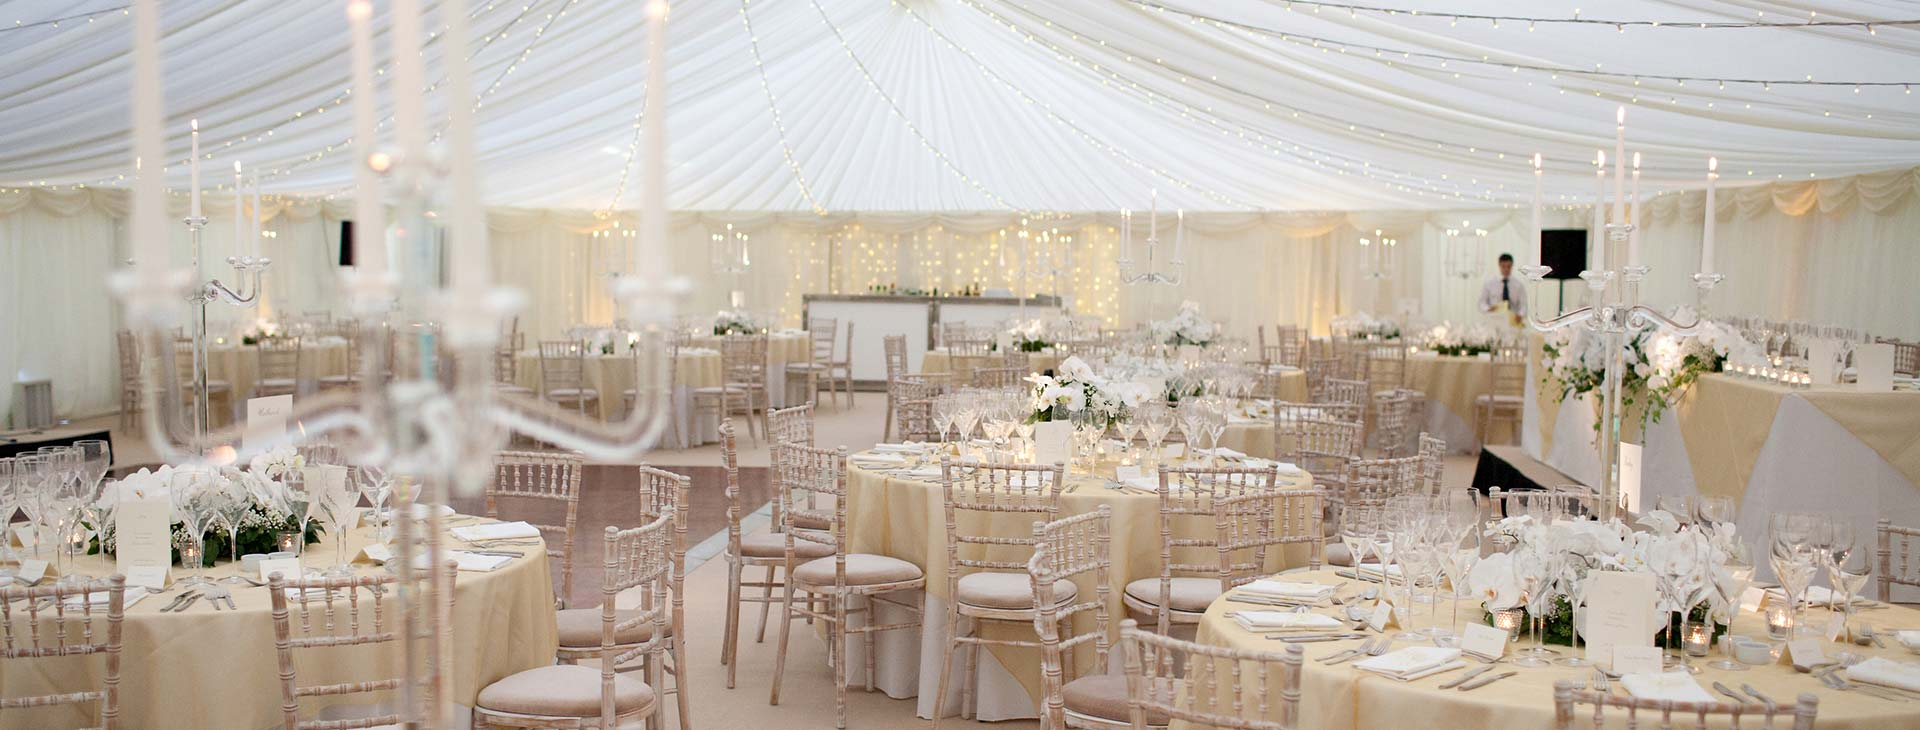 classic wedding set up in marquee